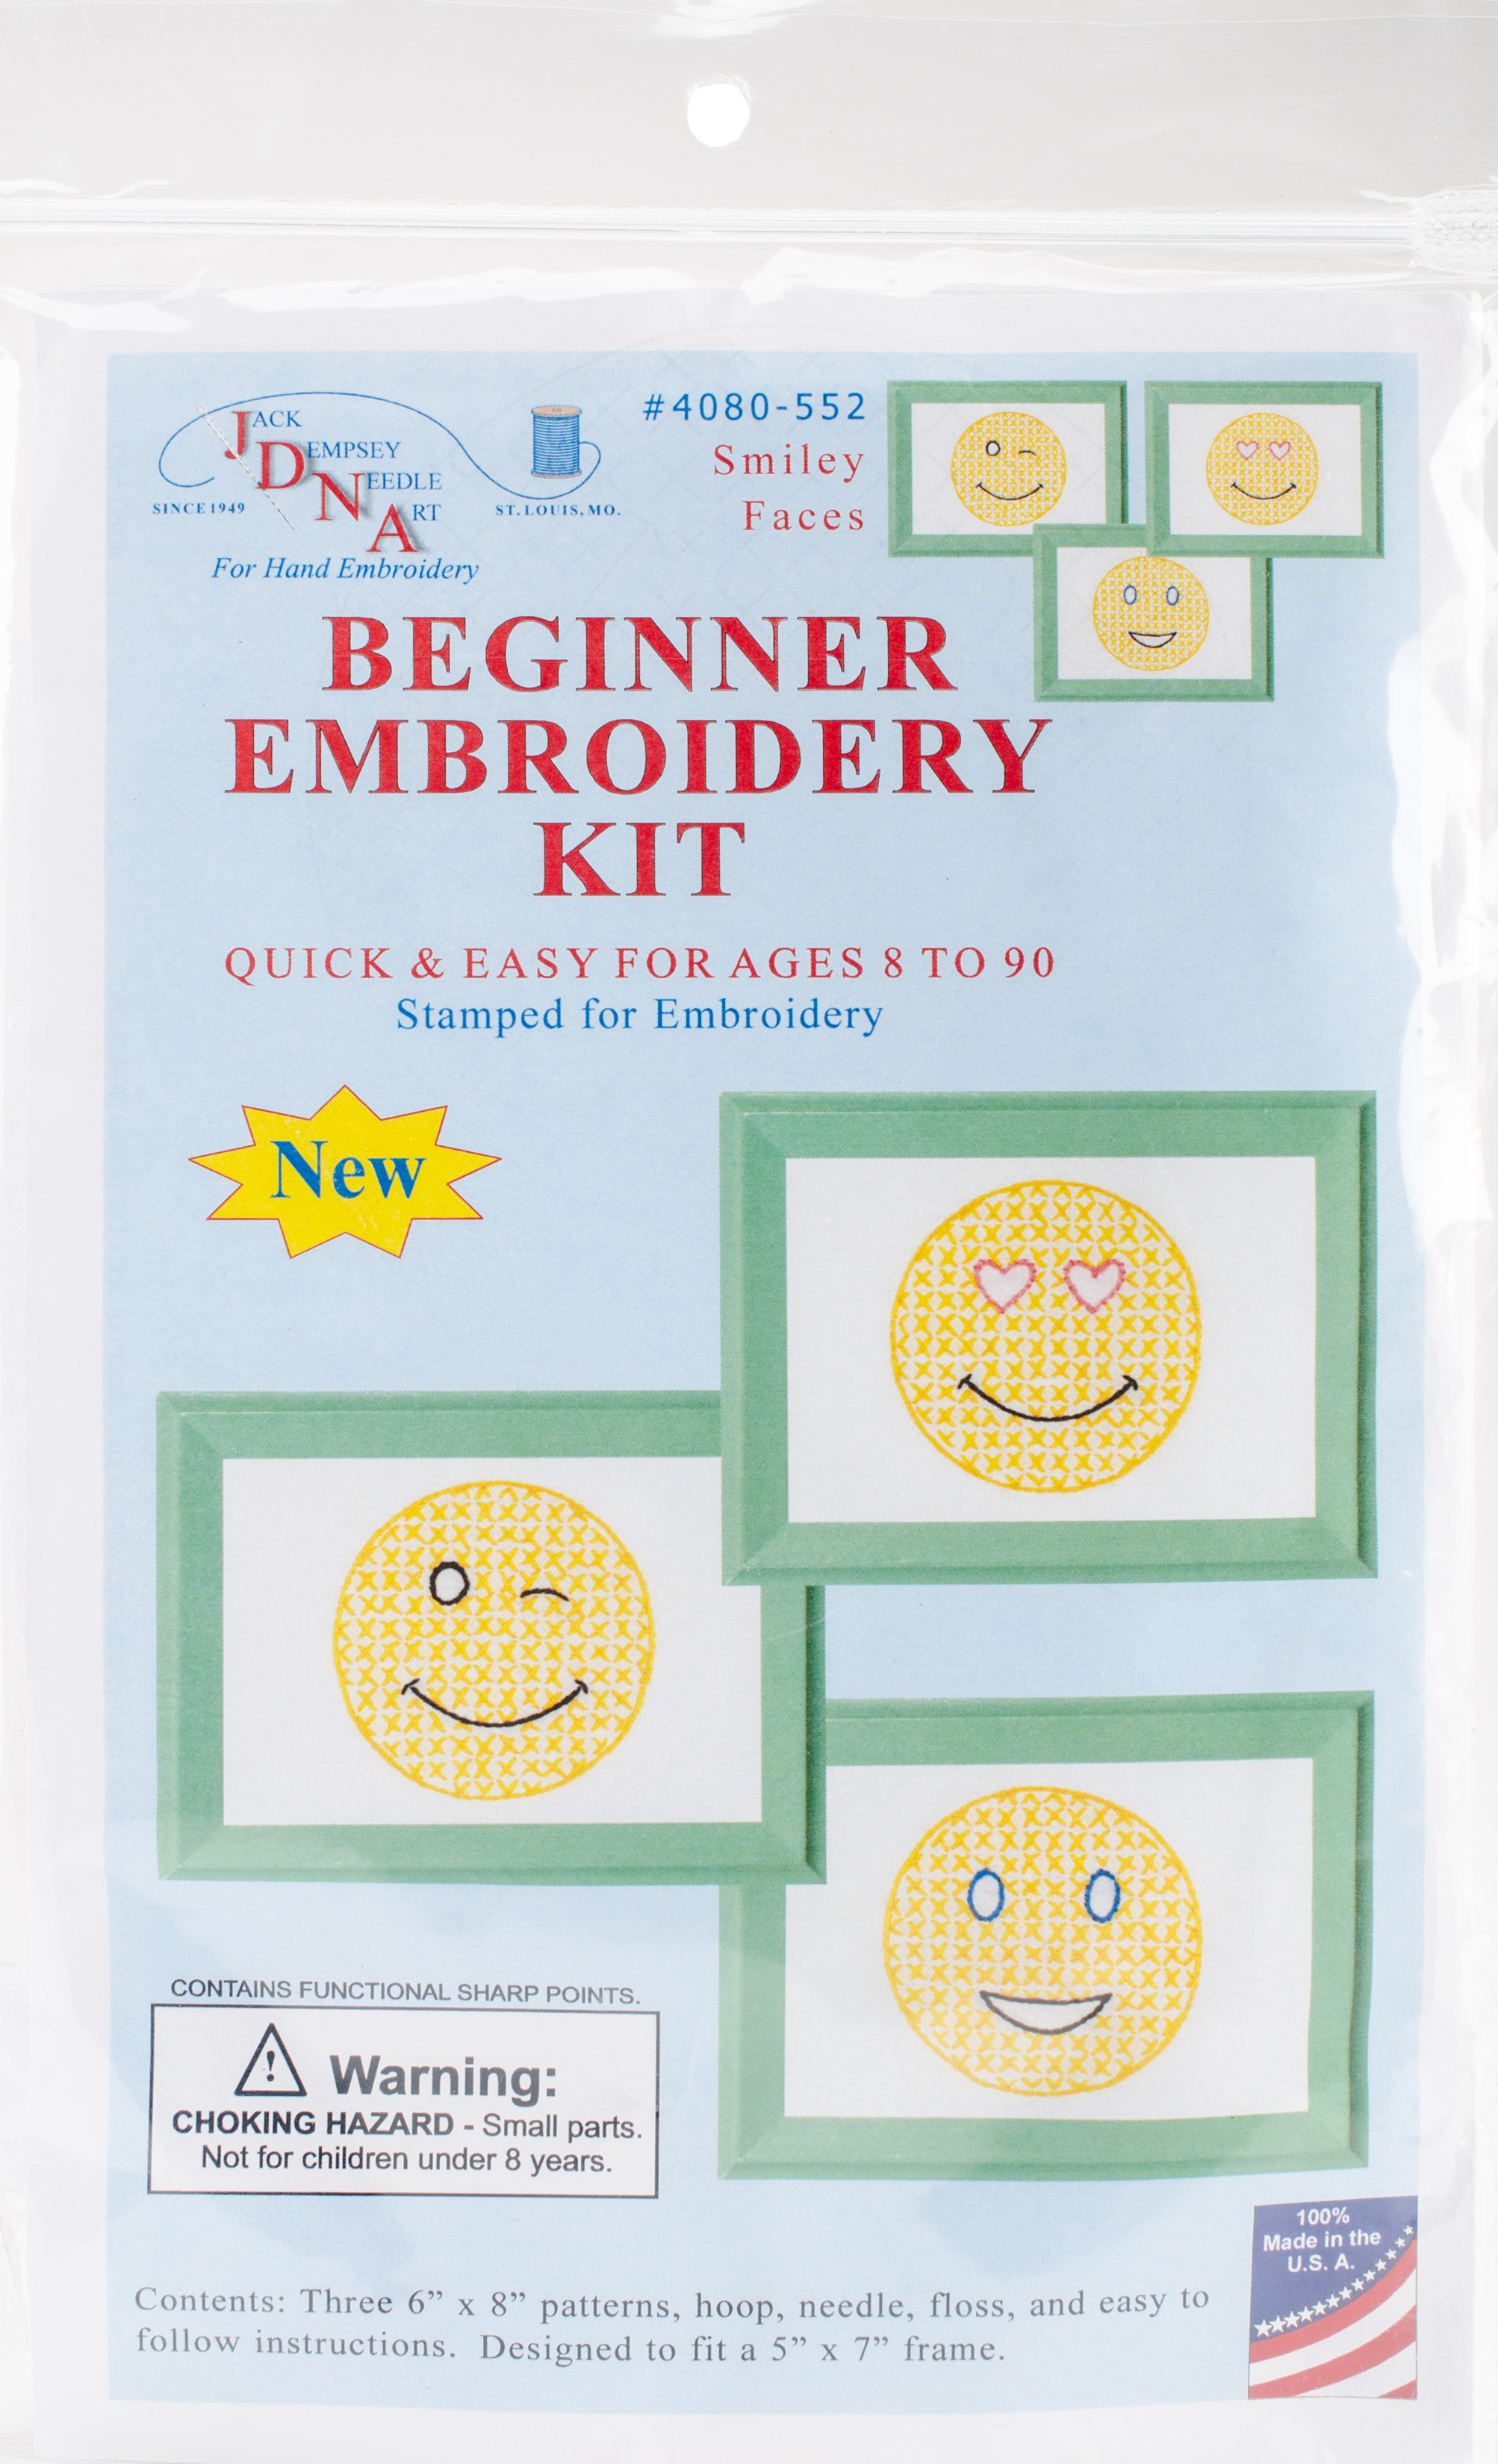 Stamped Embroidery Patterns Stamped Embroidery Kit Beginner Samplers 6x8 3pkg Smiling Faces